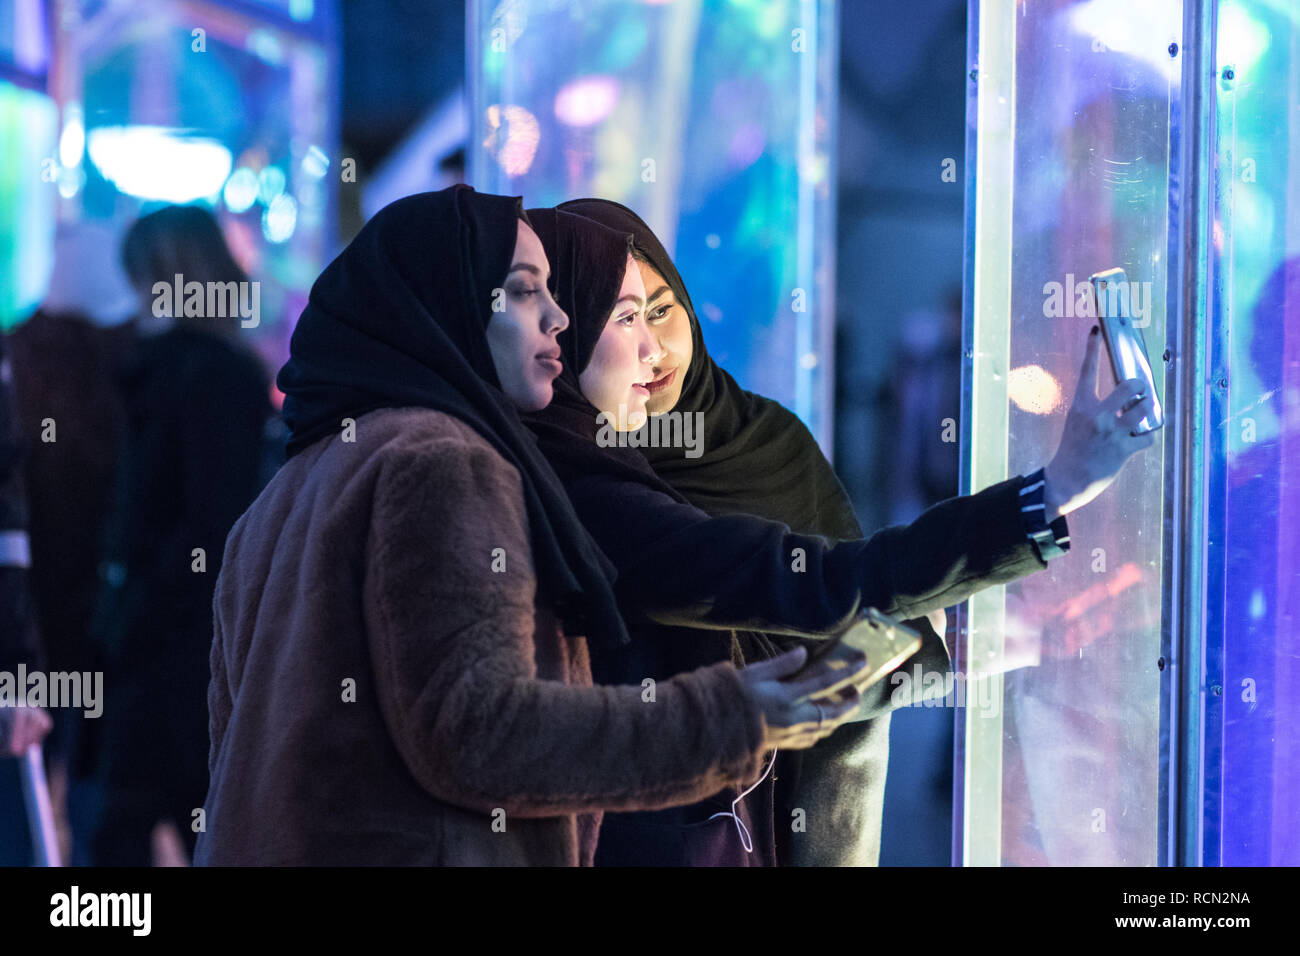 Canary Wharf, London, UK, 15th January, 2019. The 'Prismatica' installation in Jubilee Square. The  Canary Wharf Winter Lights installations  open to the public  in and around Canary Wharf from Jan 15th until Jan 26th. Credit: Carol Moir/Alamy Live News Stock Photo